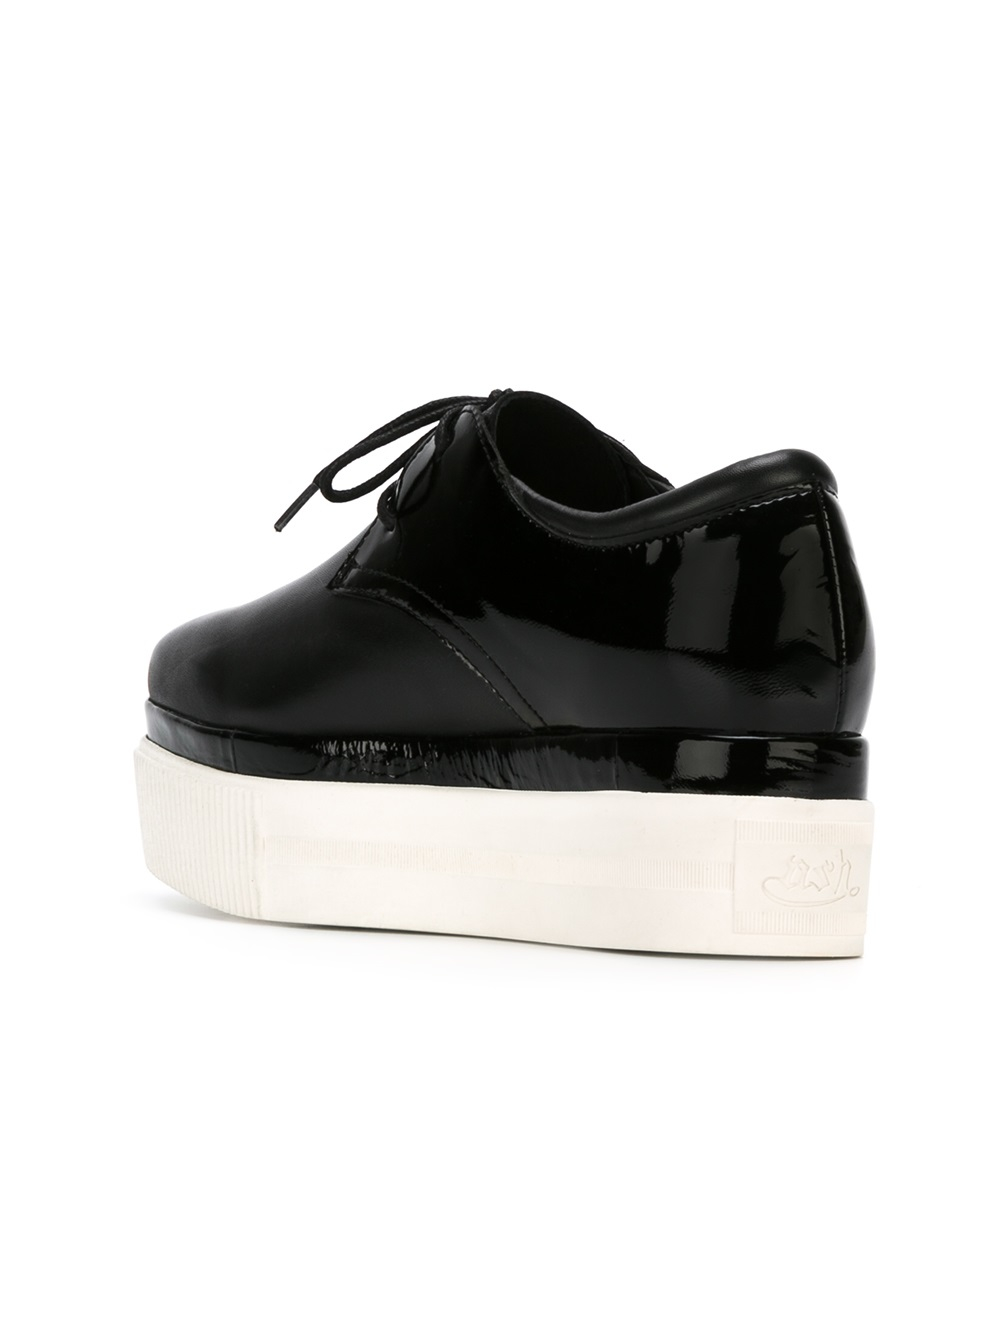 Double Sole Shoes Online India